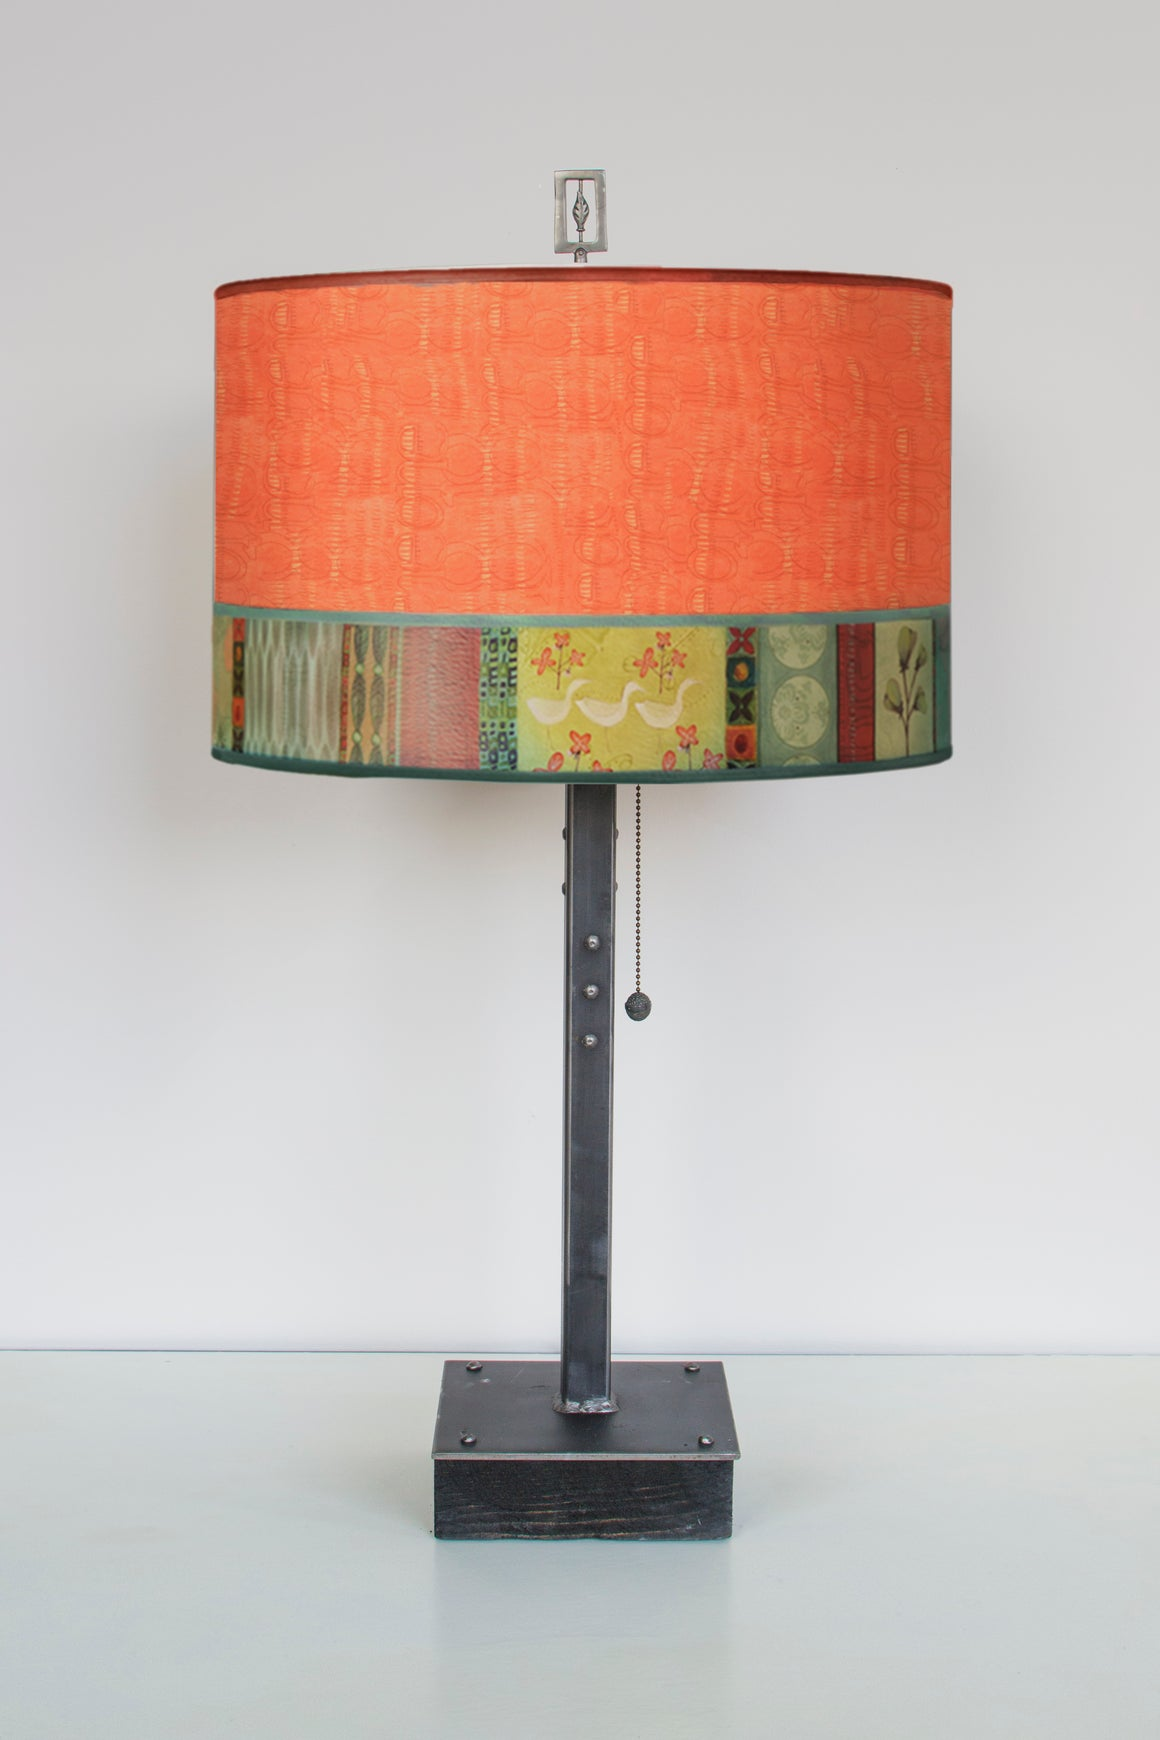 Steel Table Lamp on Wood with Large Drum Shade in Melody in Coral